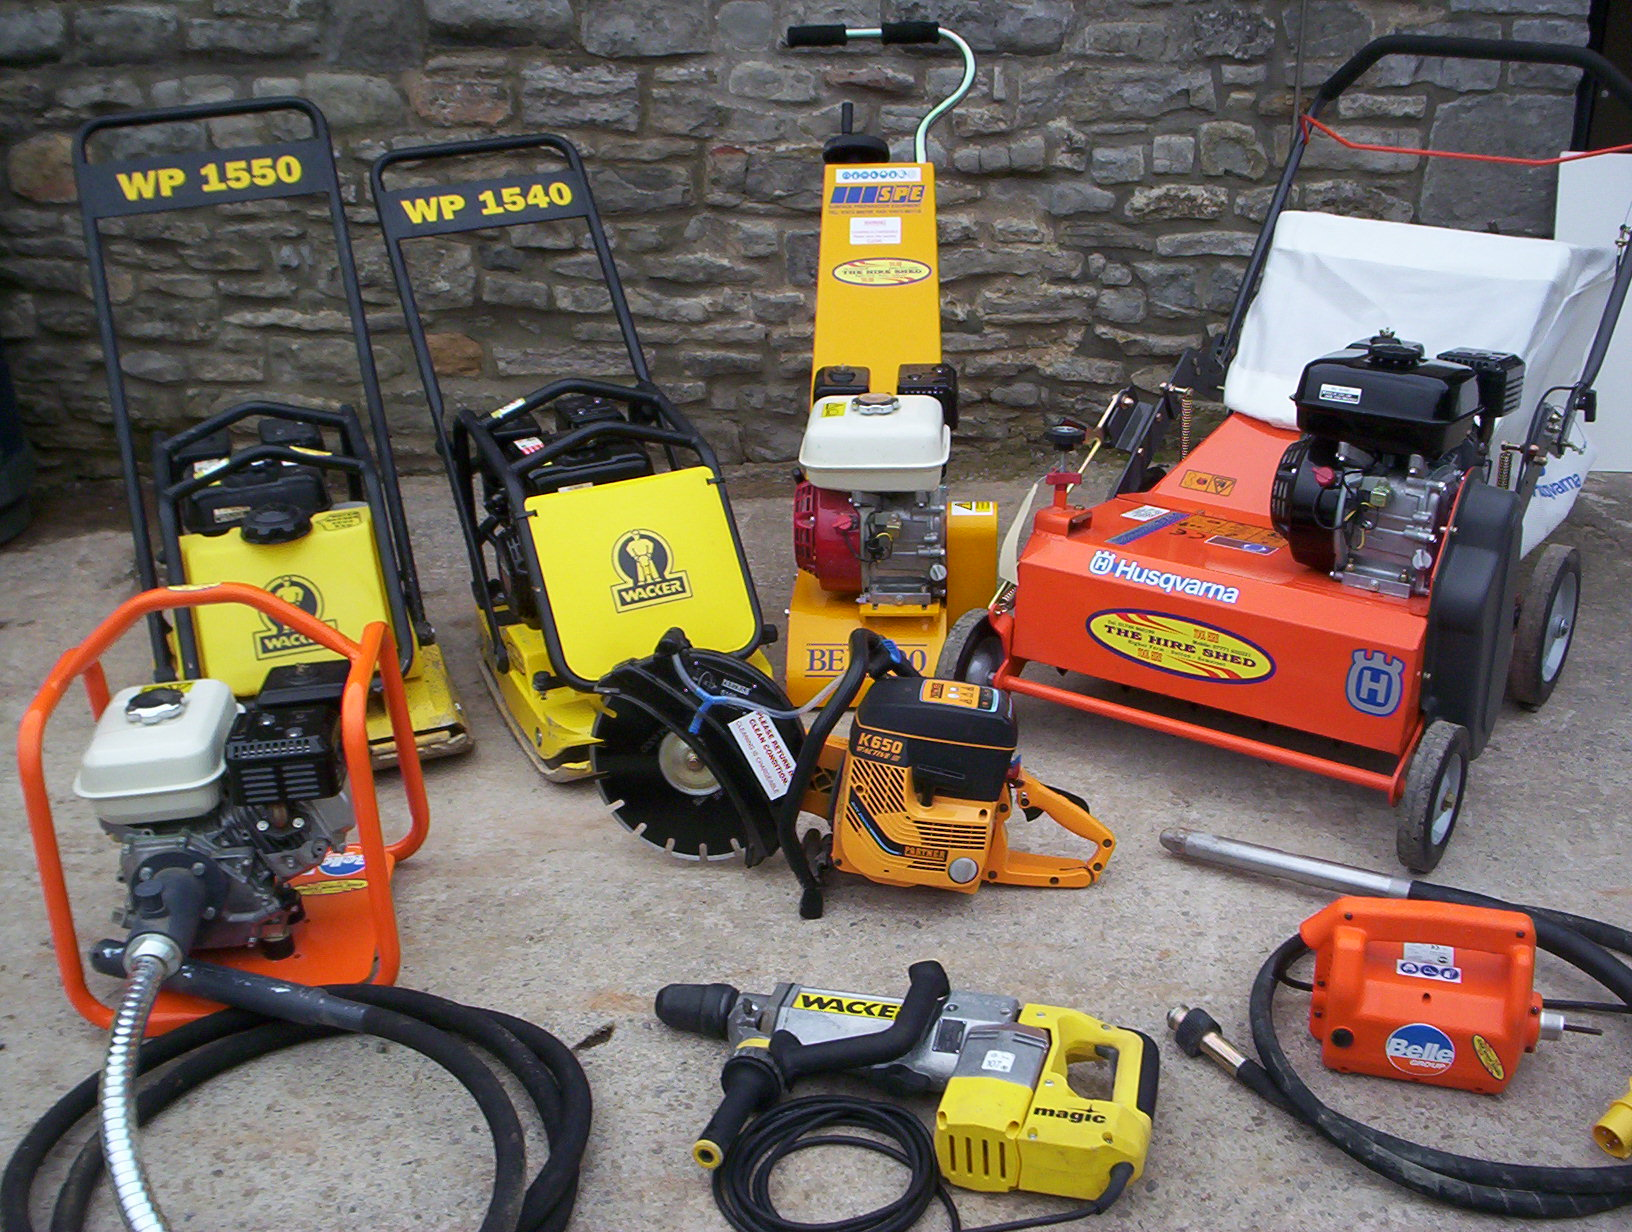 Small portion of our collection of tools/machines image